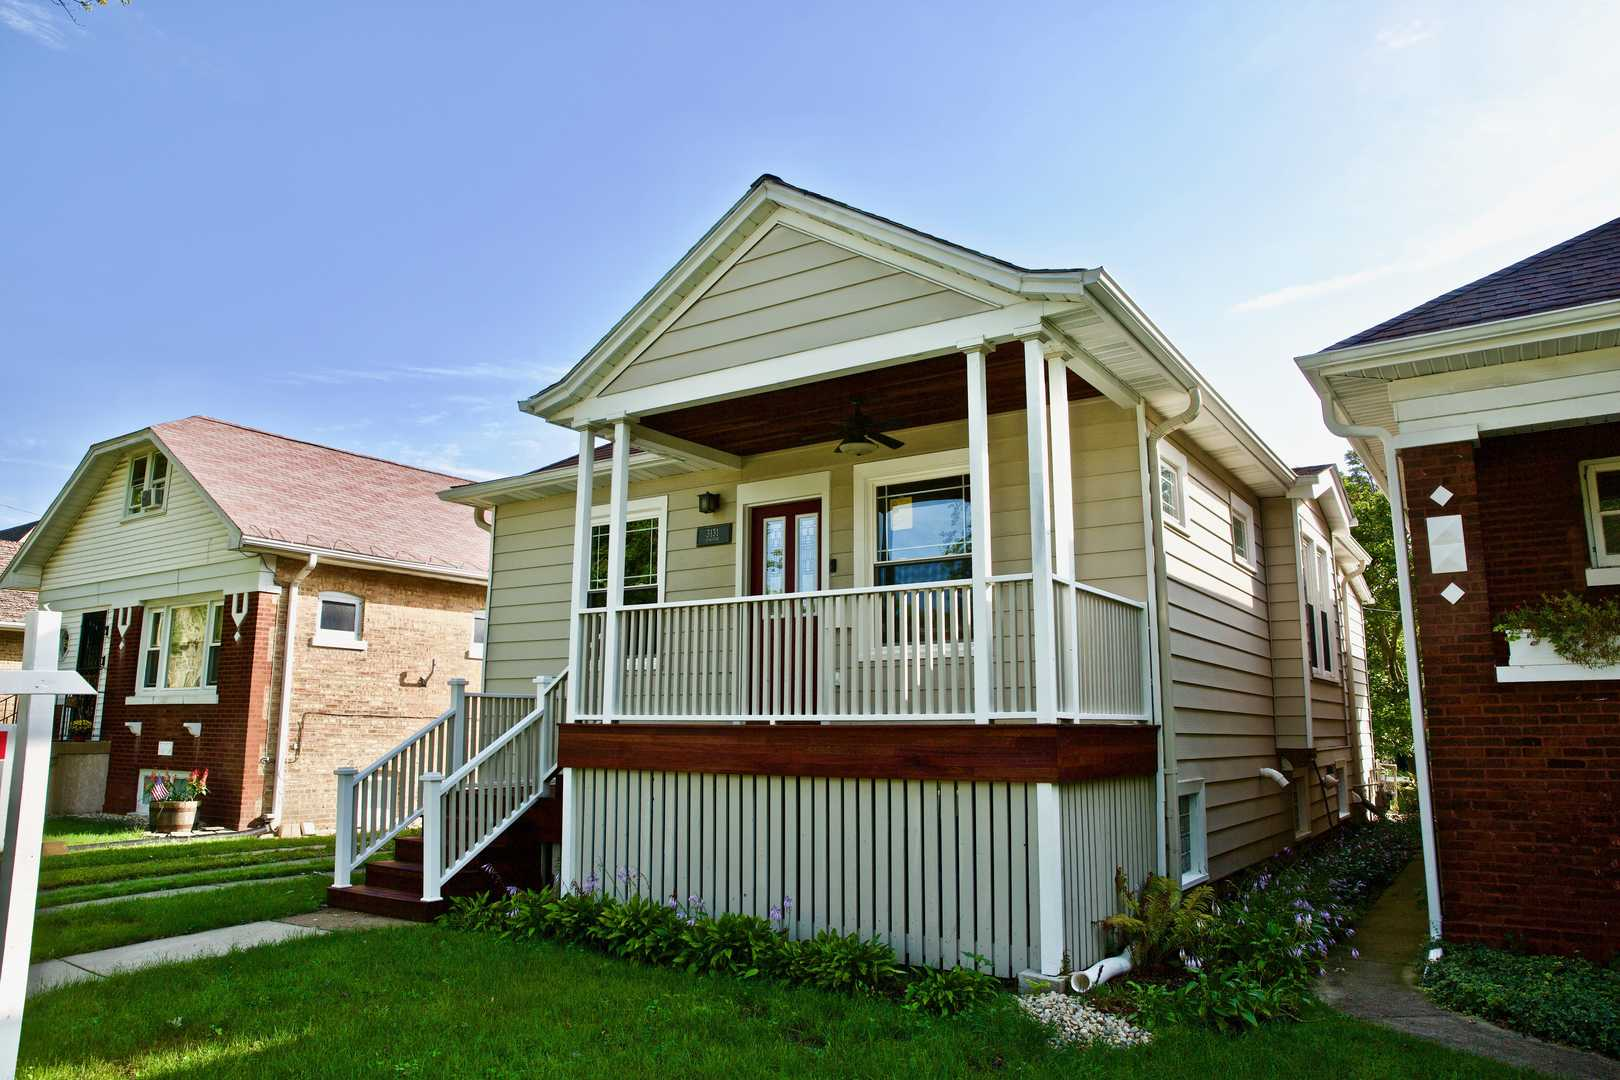 One of Brookfield 3 Bedroom Homes for Sale at 3131 SUNNYSIDE Avenue